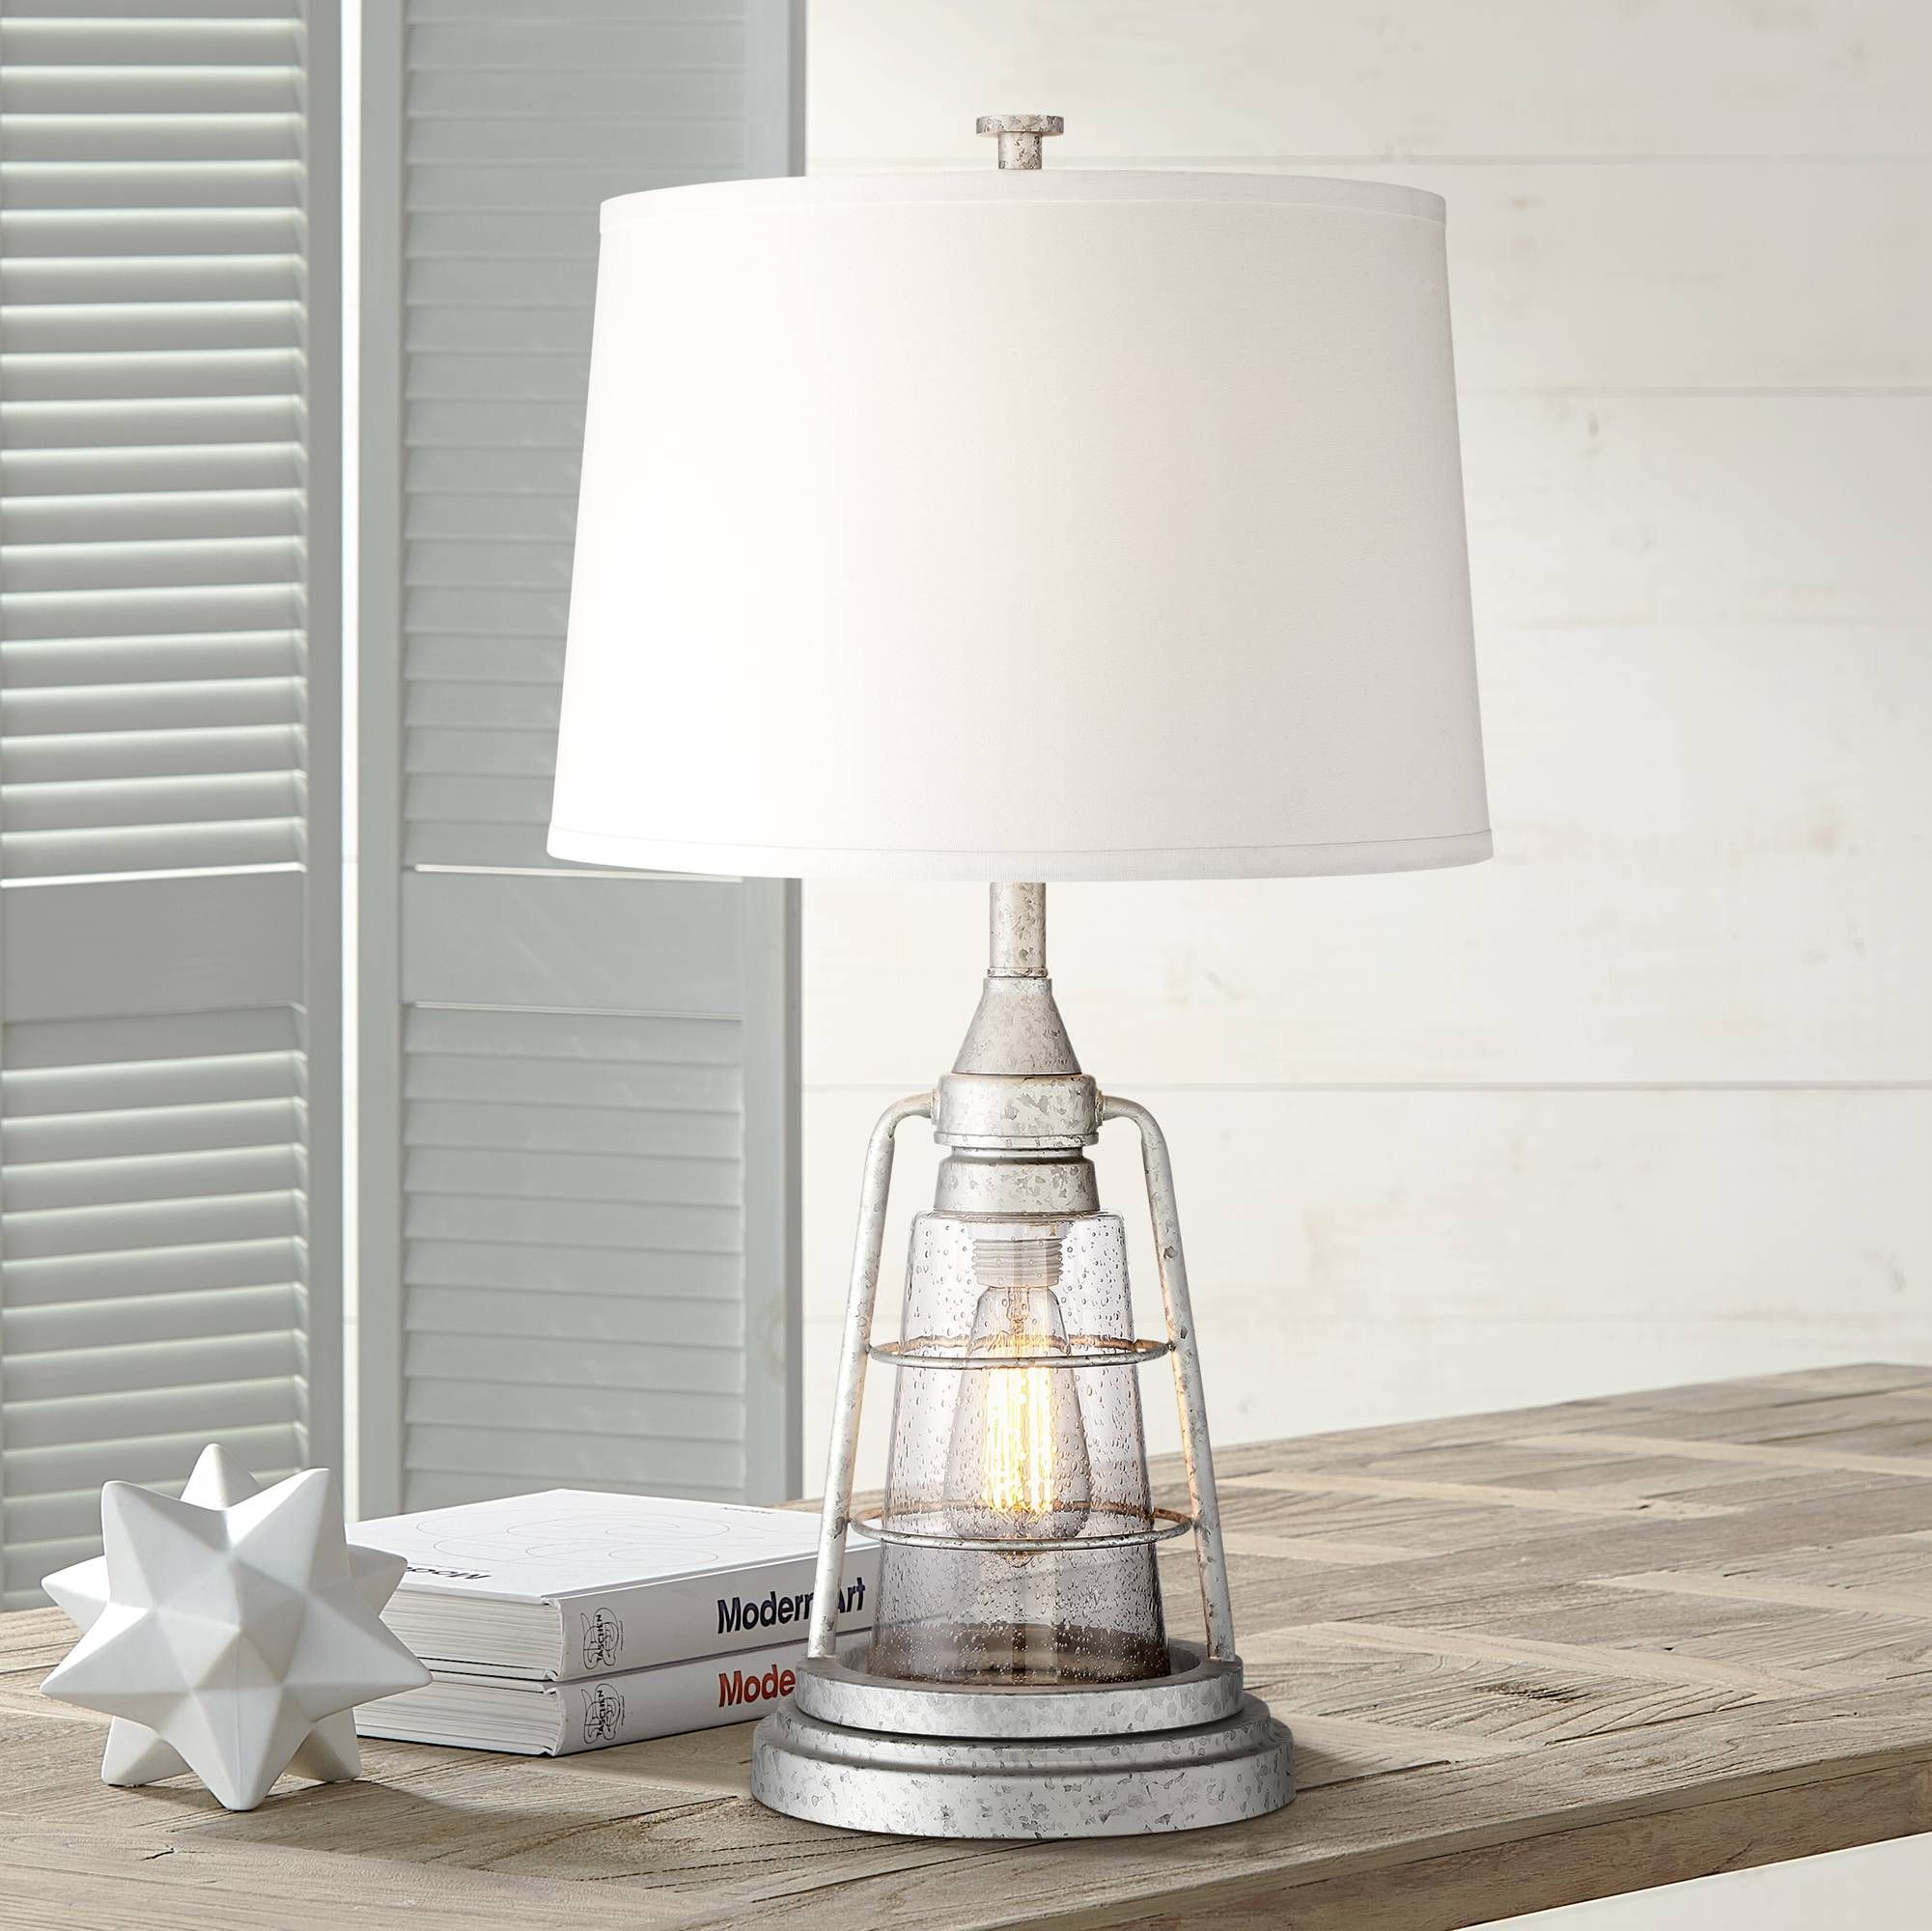 Fisher Galvanized Metal 28 3 4 High Nightlight Table Lamp 9h334 Lamps Plus Table Lamp Lamp Night Light